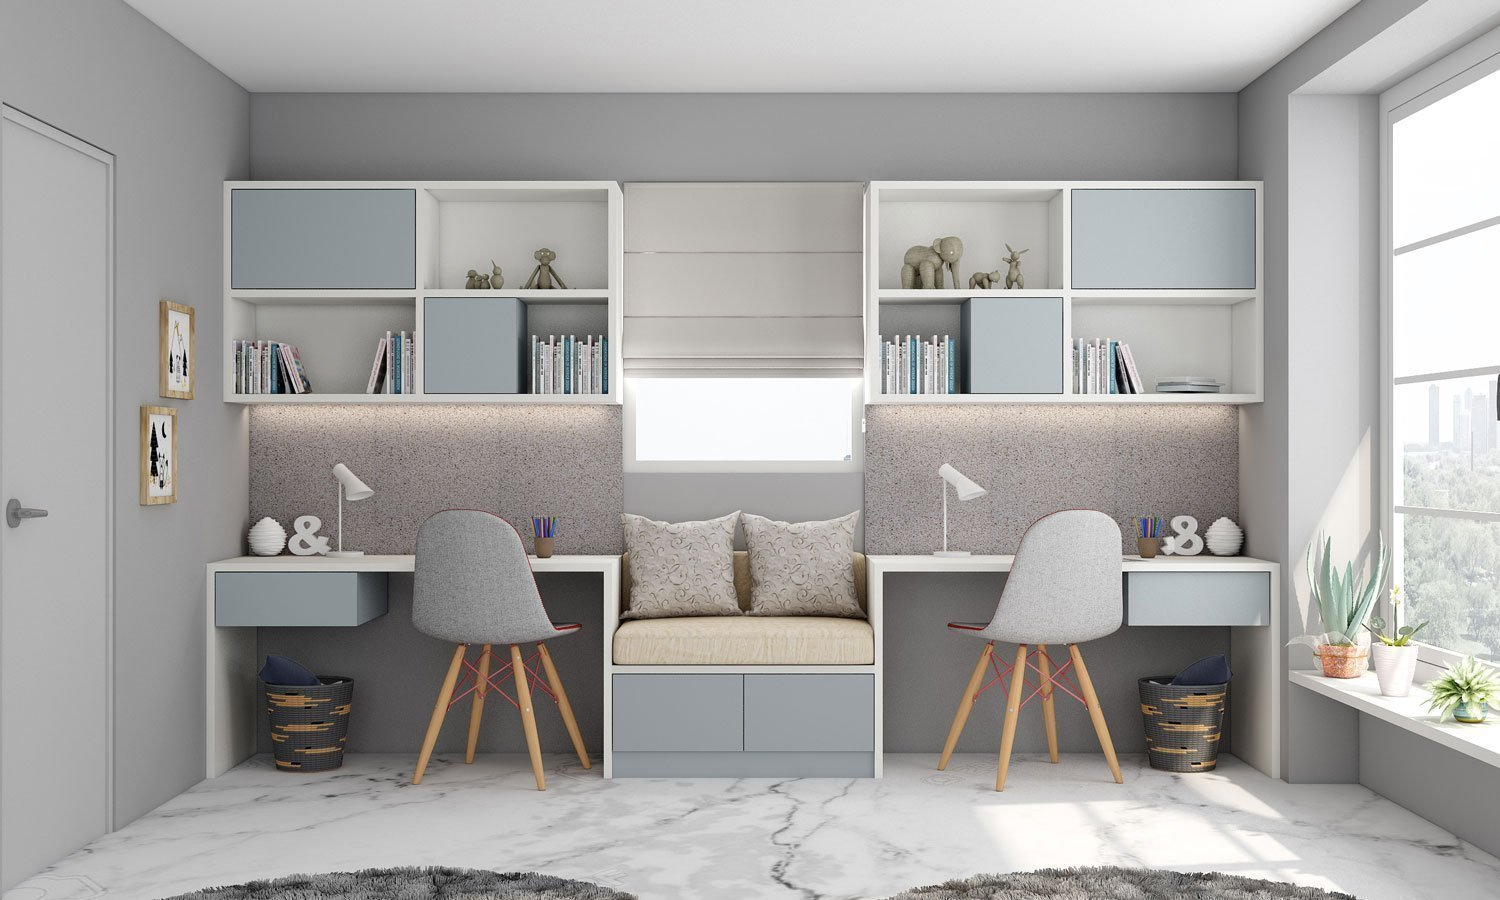 Study Office Finished in Light Grey and Alpine White With a Cushion Seating in Centre